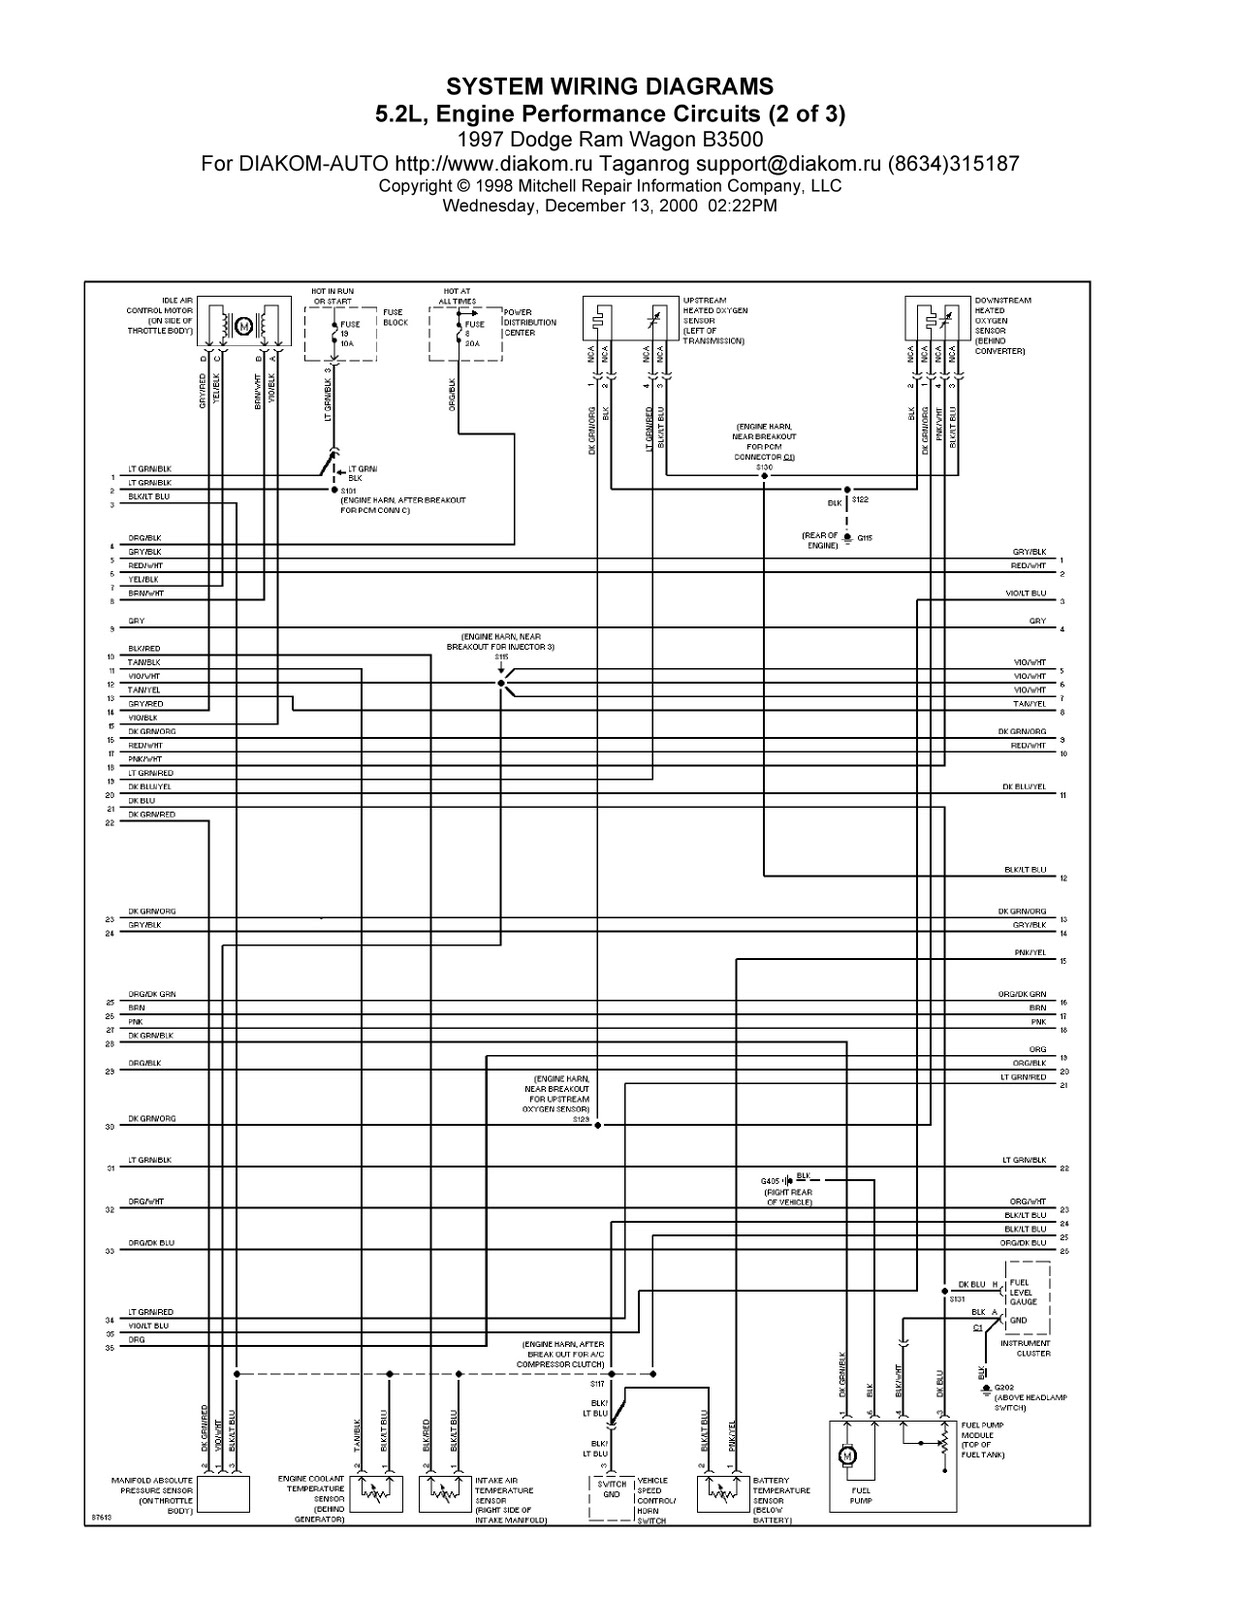 Wiring Diagram For 1999 Dodge Ram 2500 Etl Process Flow Example 2005 3500 Battery Get Free